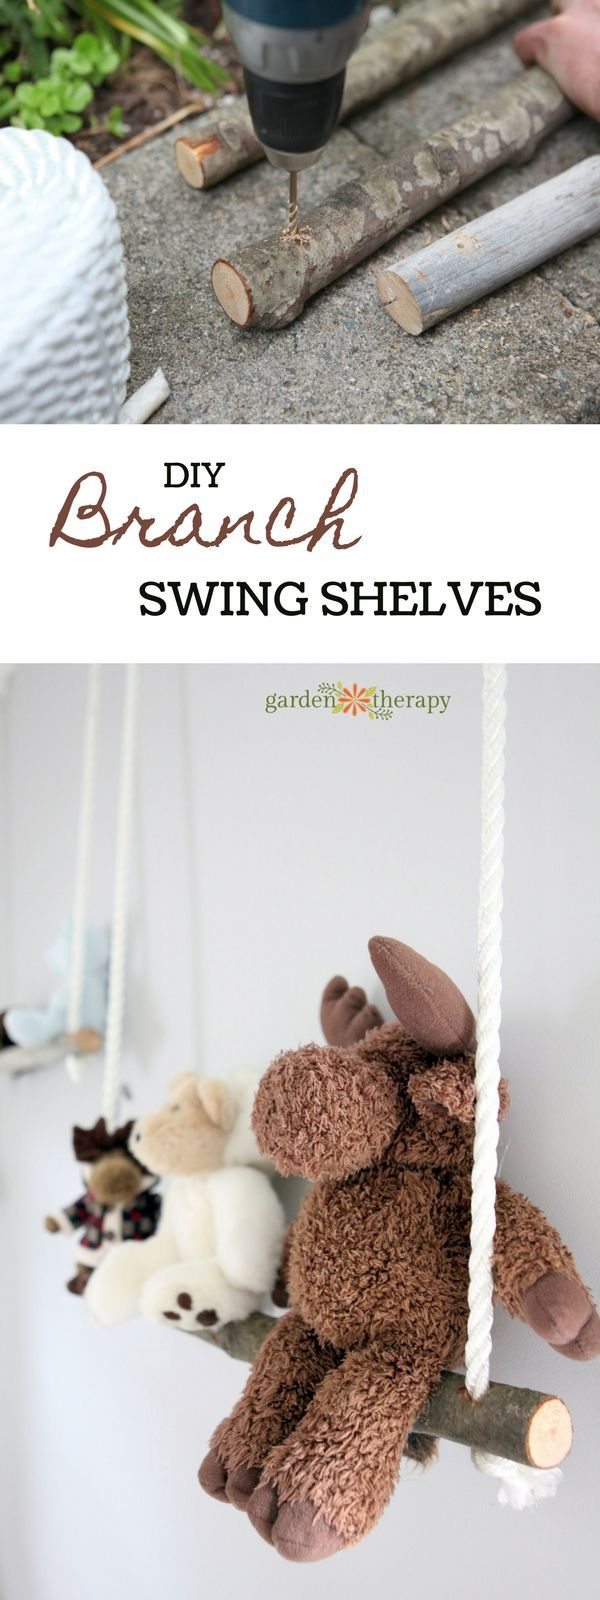 Branch Swing Shelves